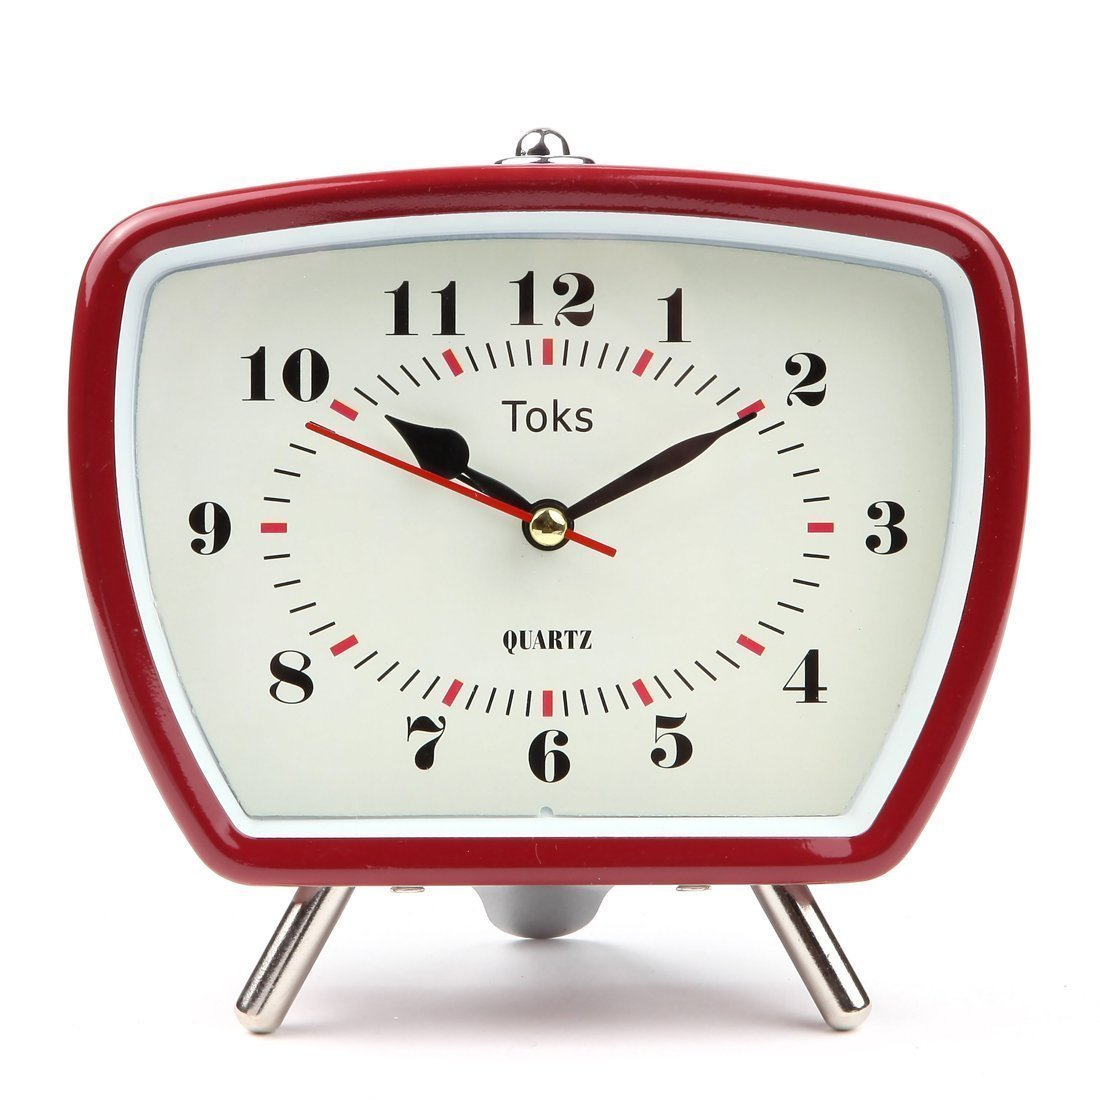 Lily's Home Vintage/Retro Inspired Analog Alarm Clock, Red 5.5 Red 5.5 Lily' s Home SW443-A